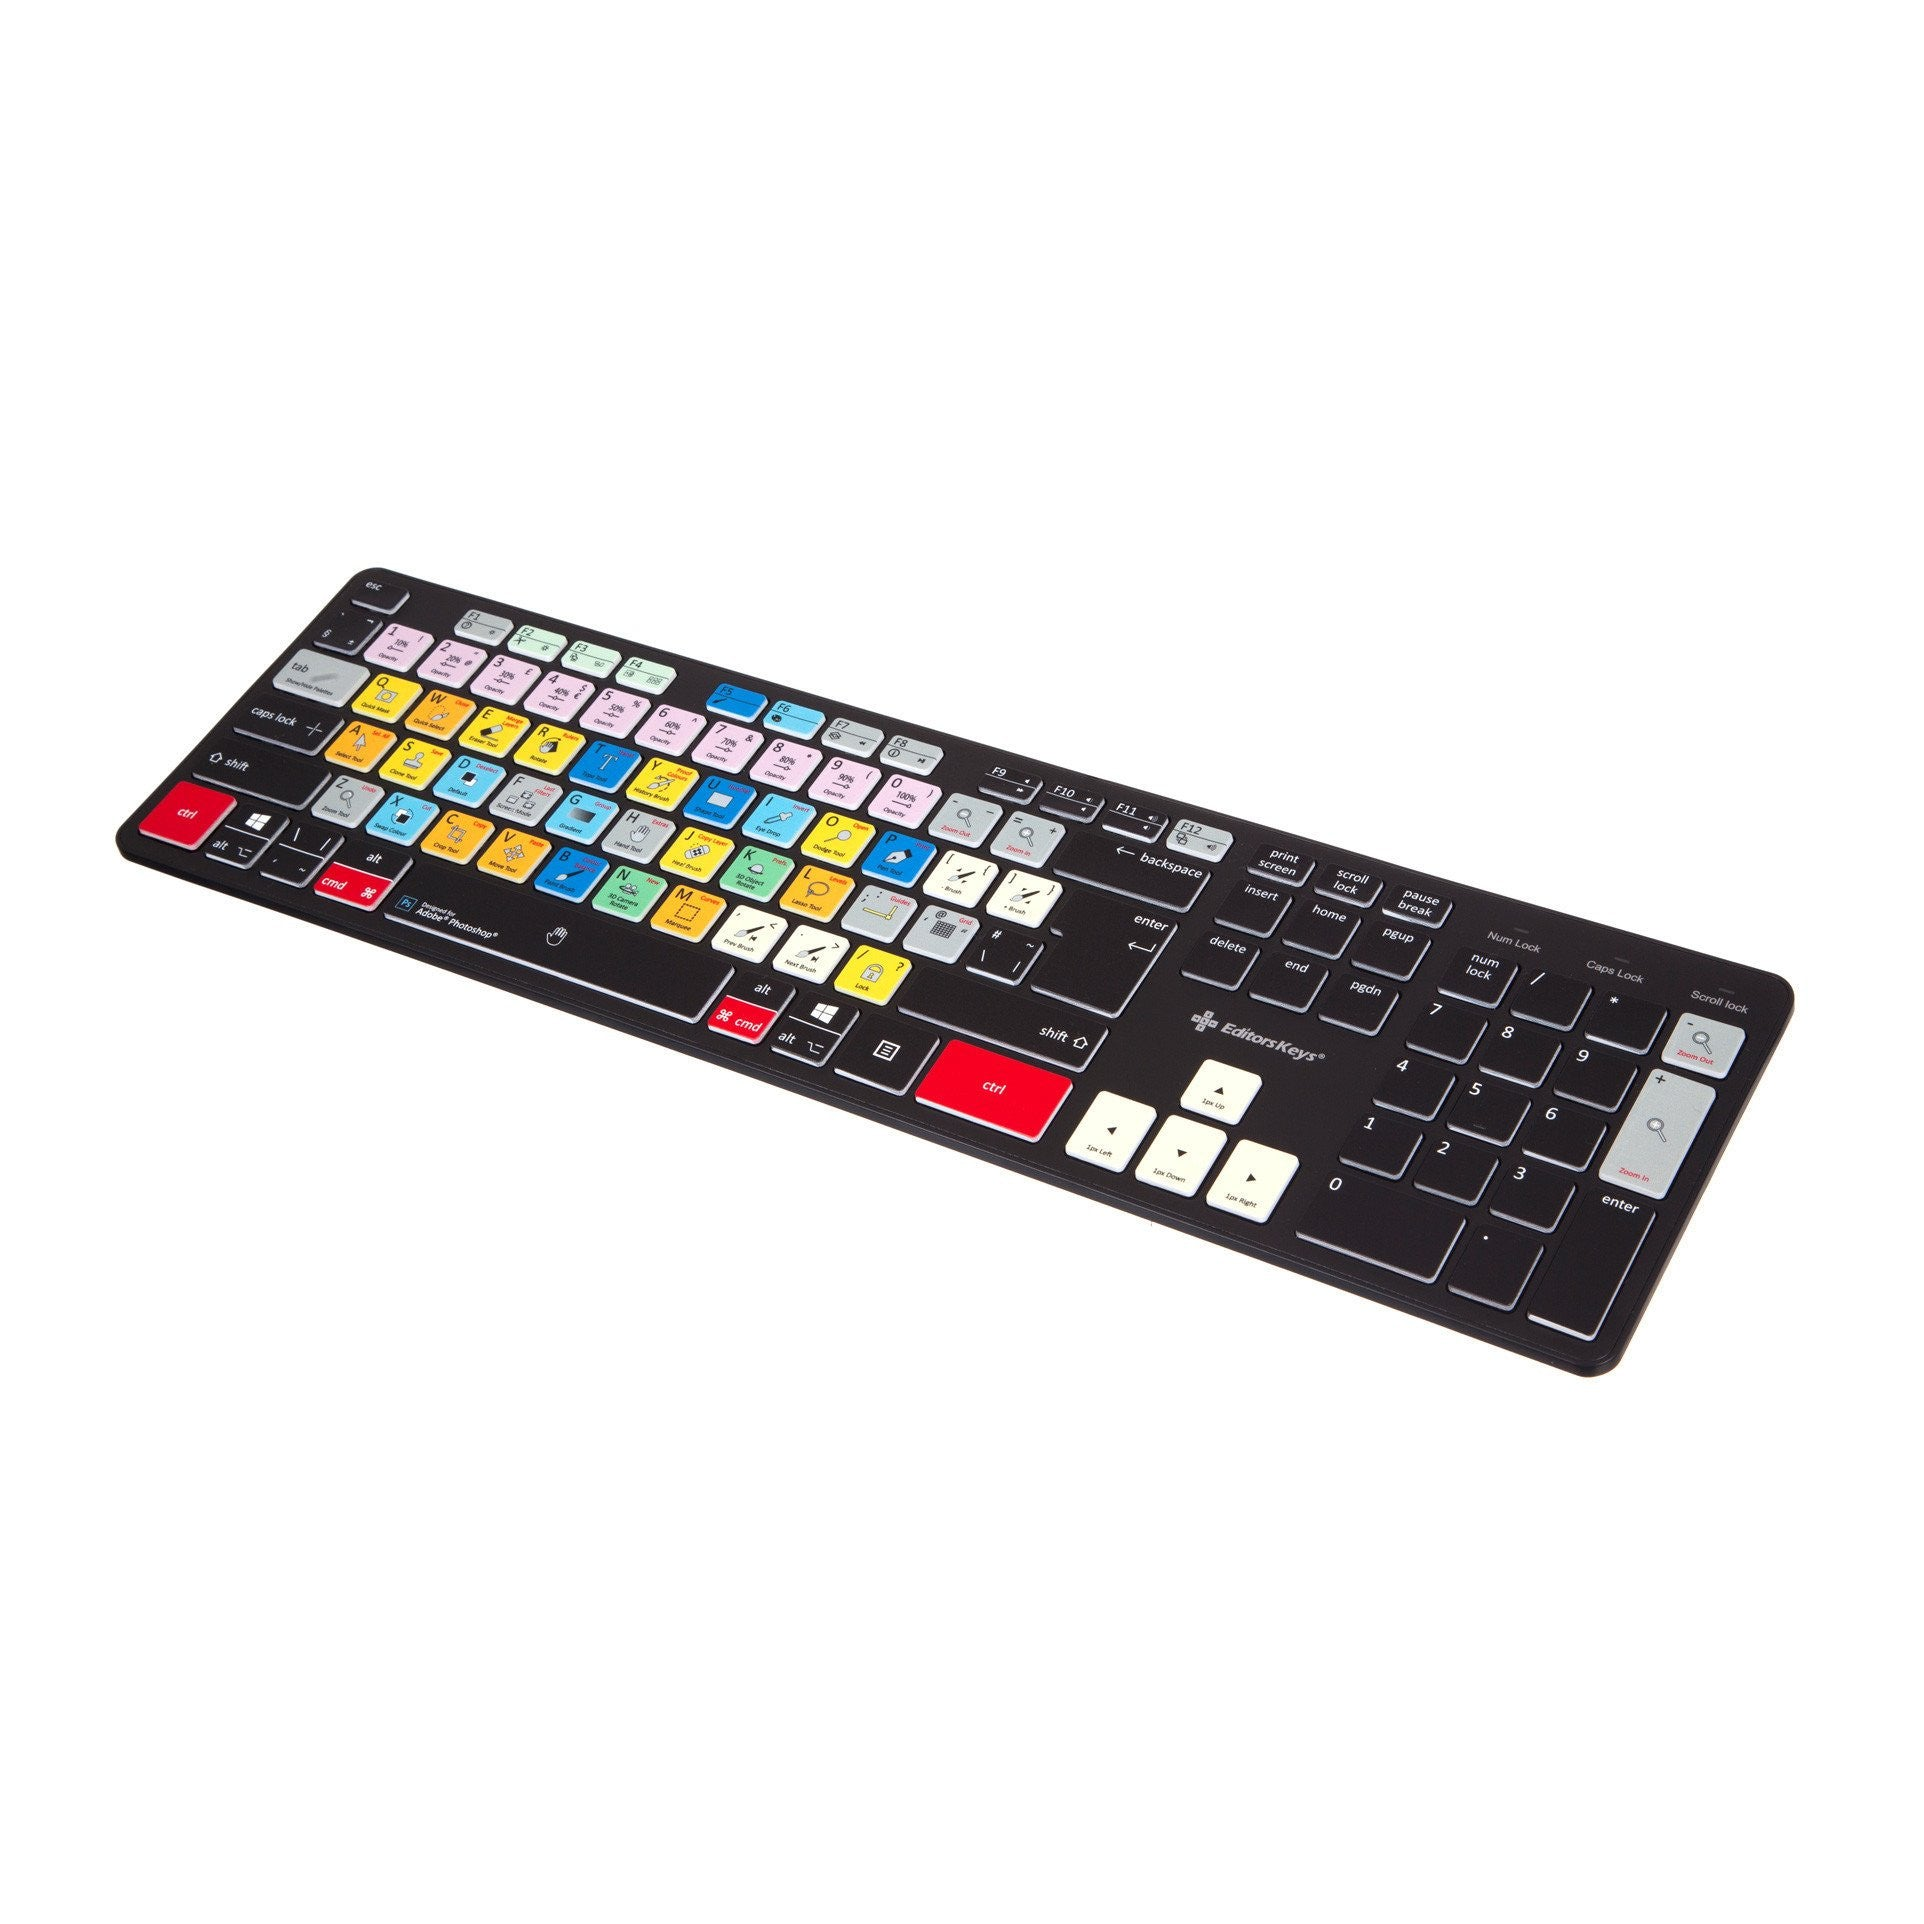 Adobe Photoshop Keyboard - Slimline Wired/Wireless